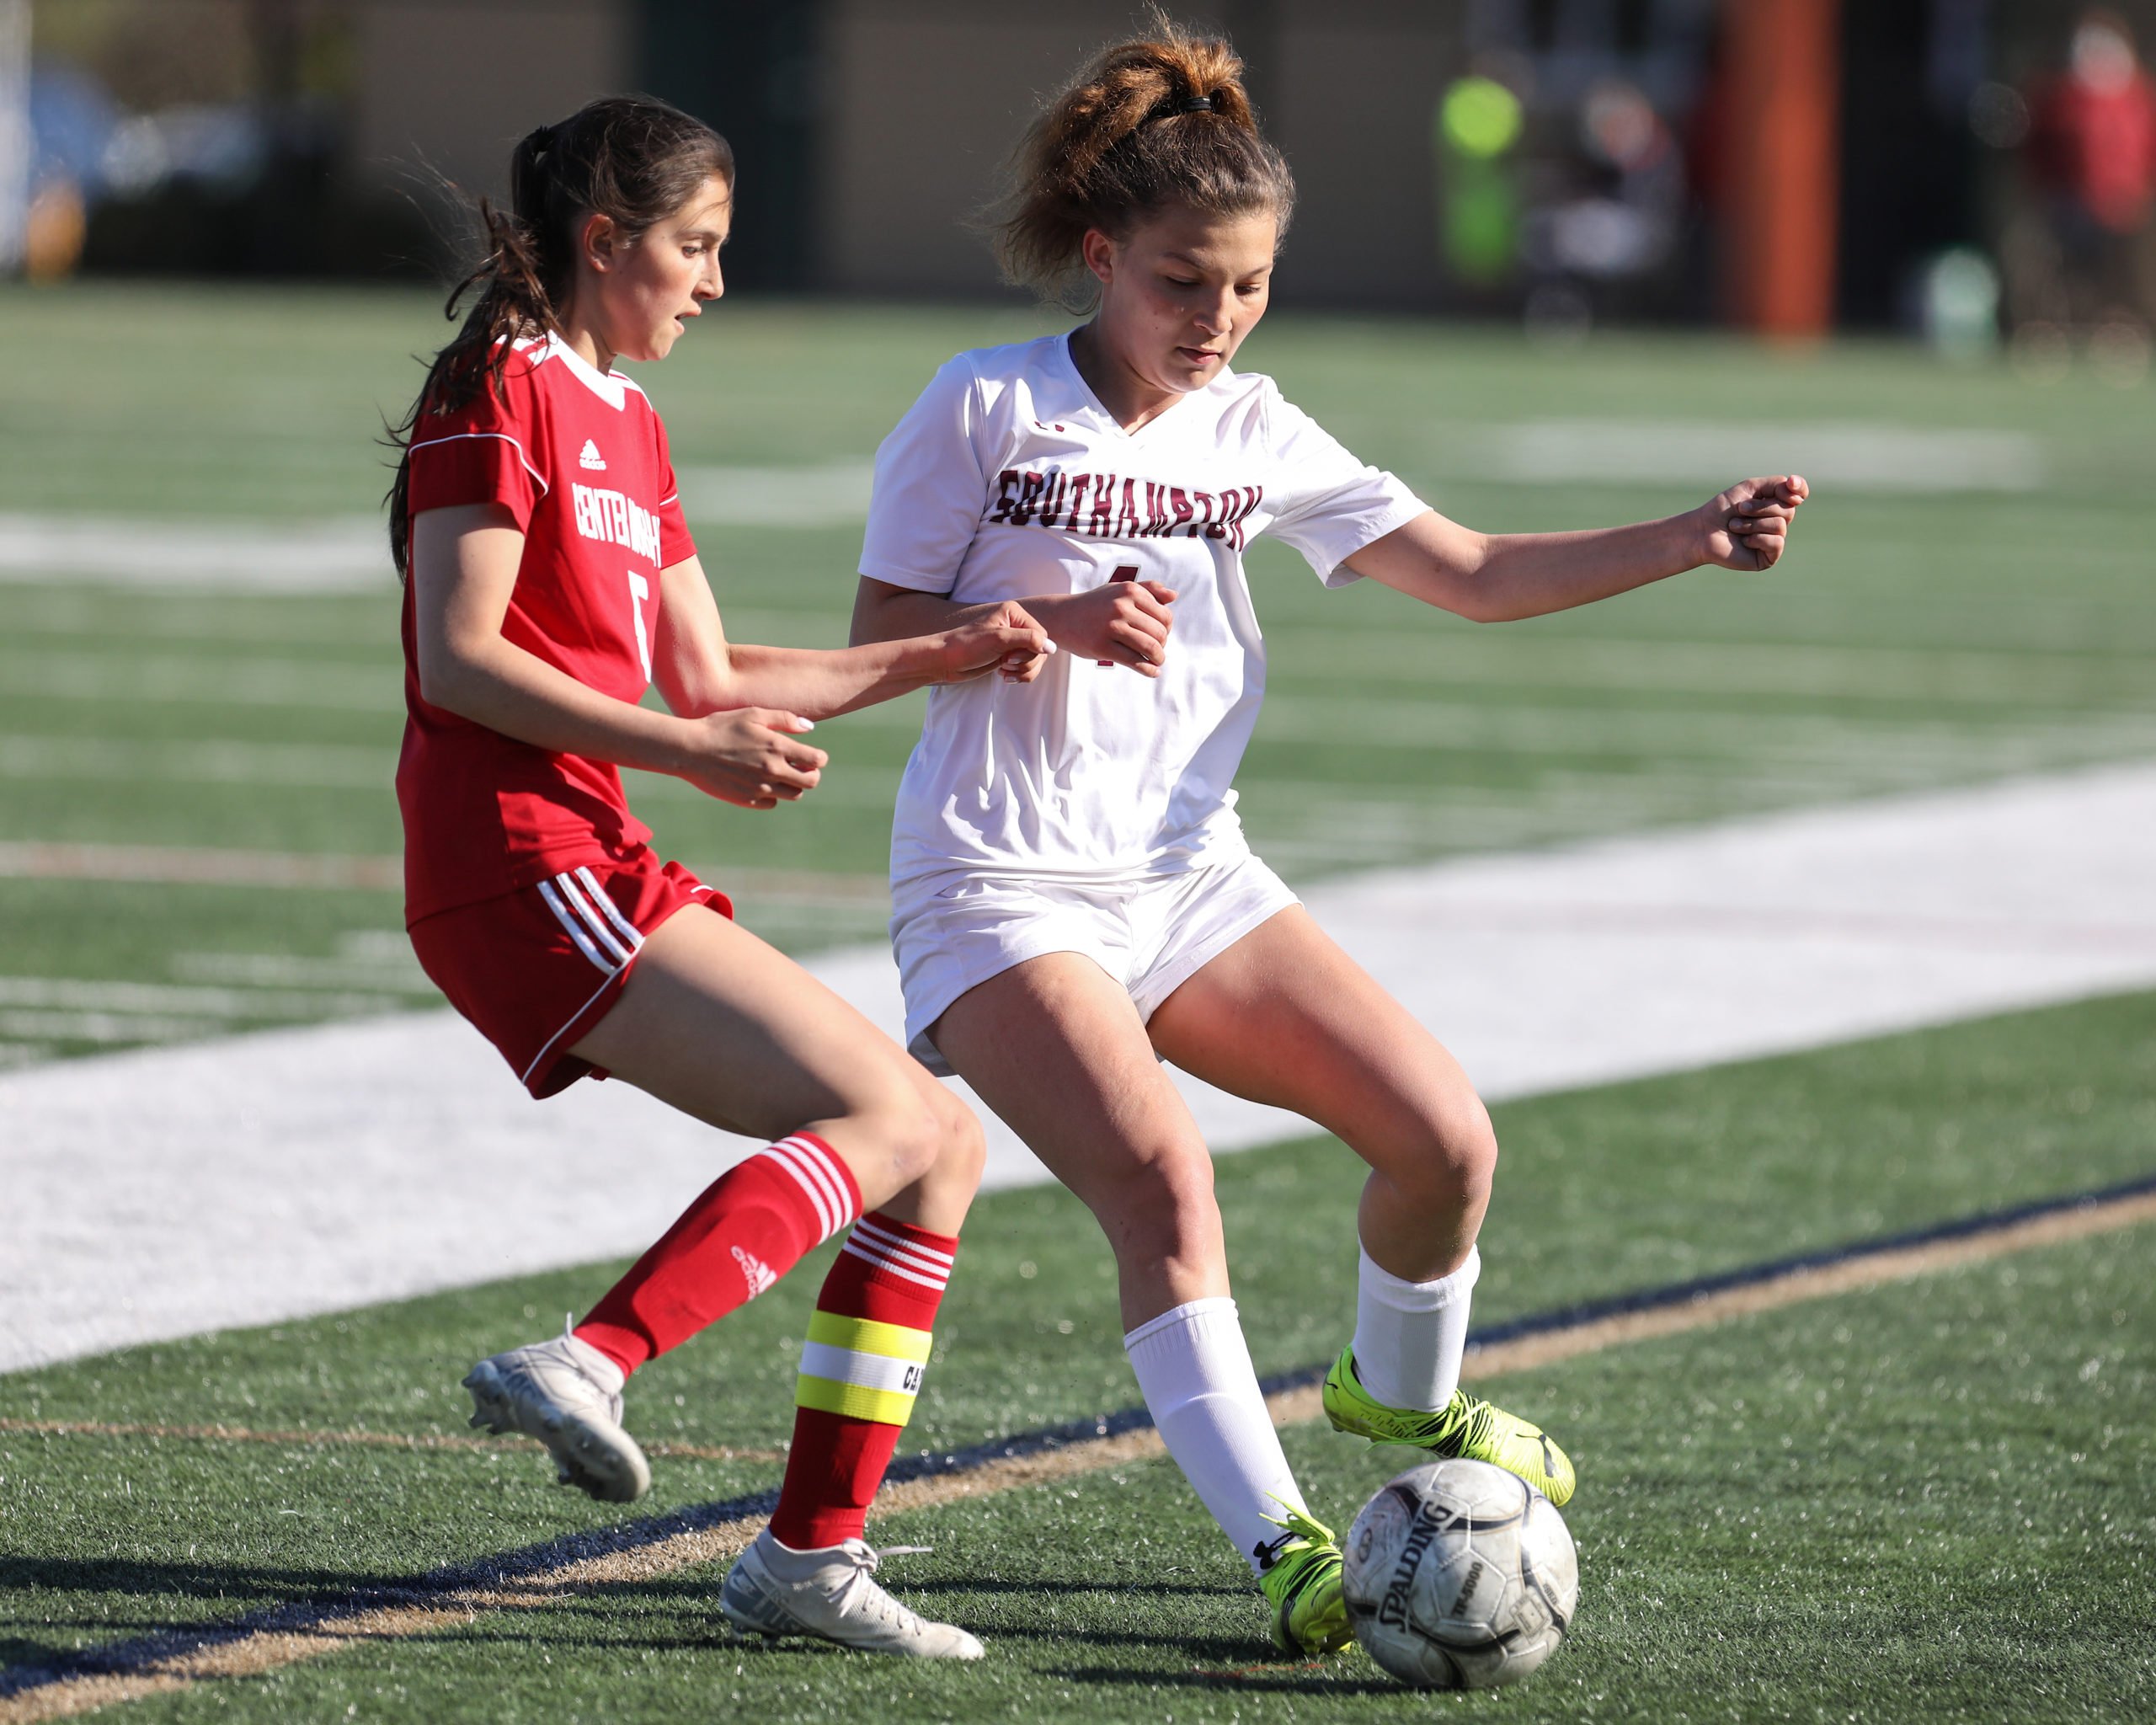 Southampton junior Gabriella Arnold maintains possession of the ball.